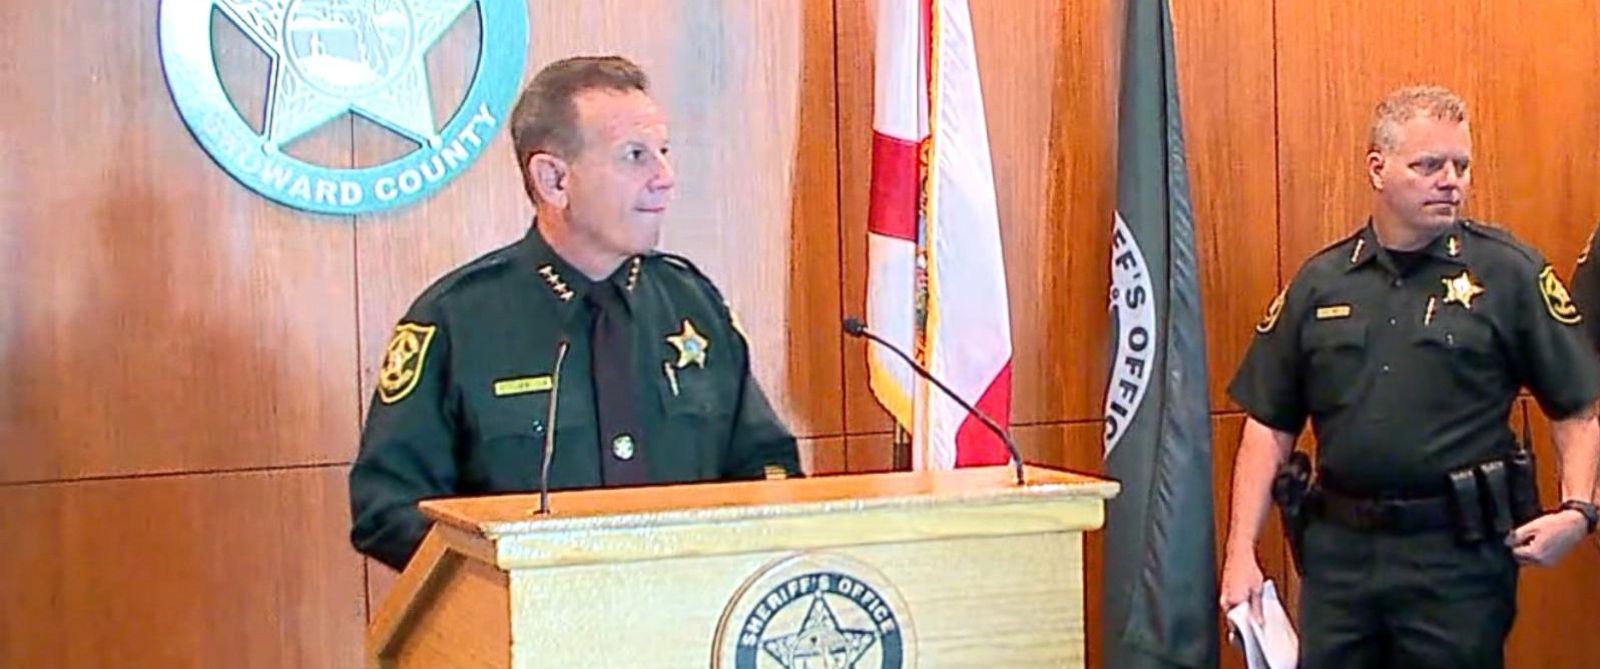 VIDEO: Sheriff investigates reports that 3 other deputies failed to respond to Florida school shooting